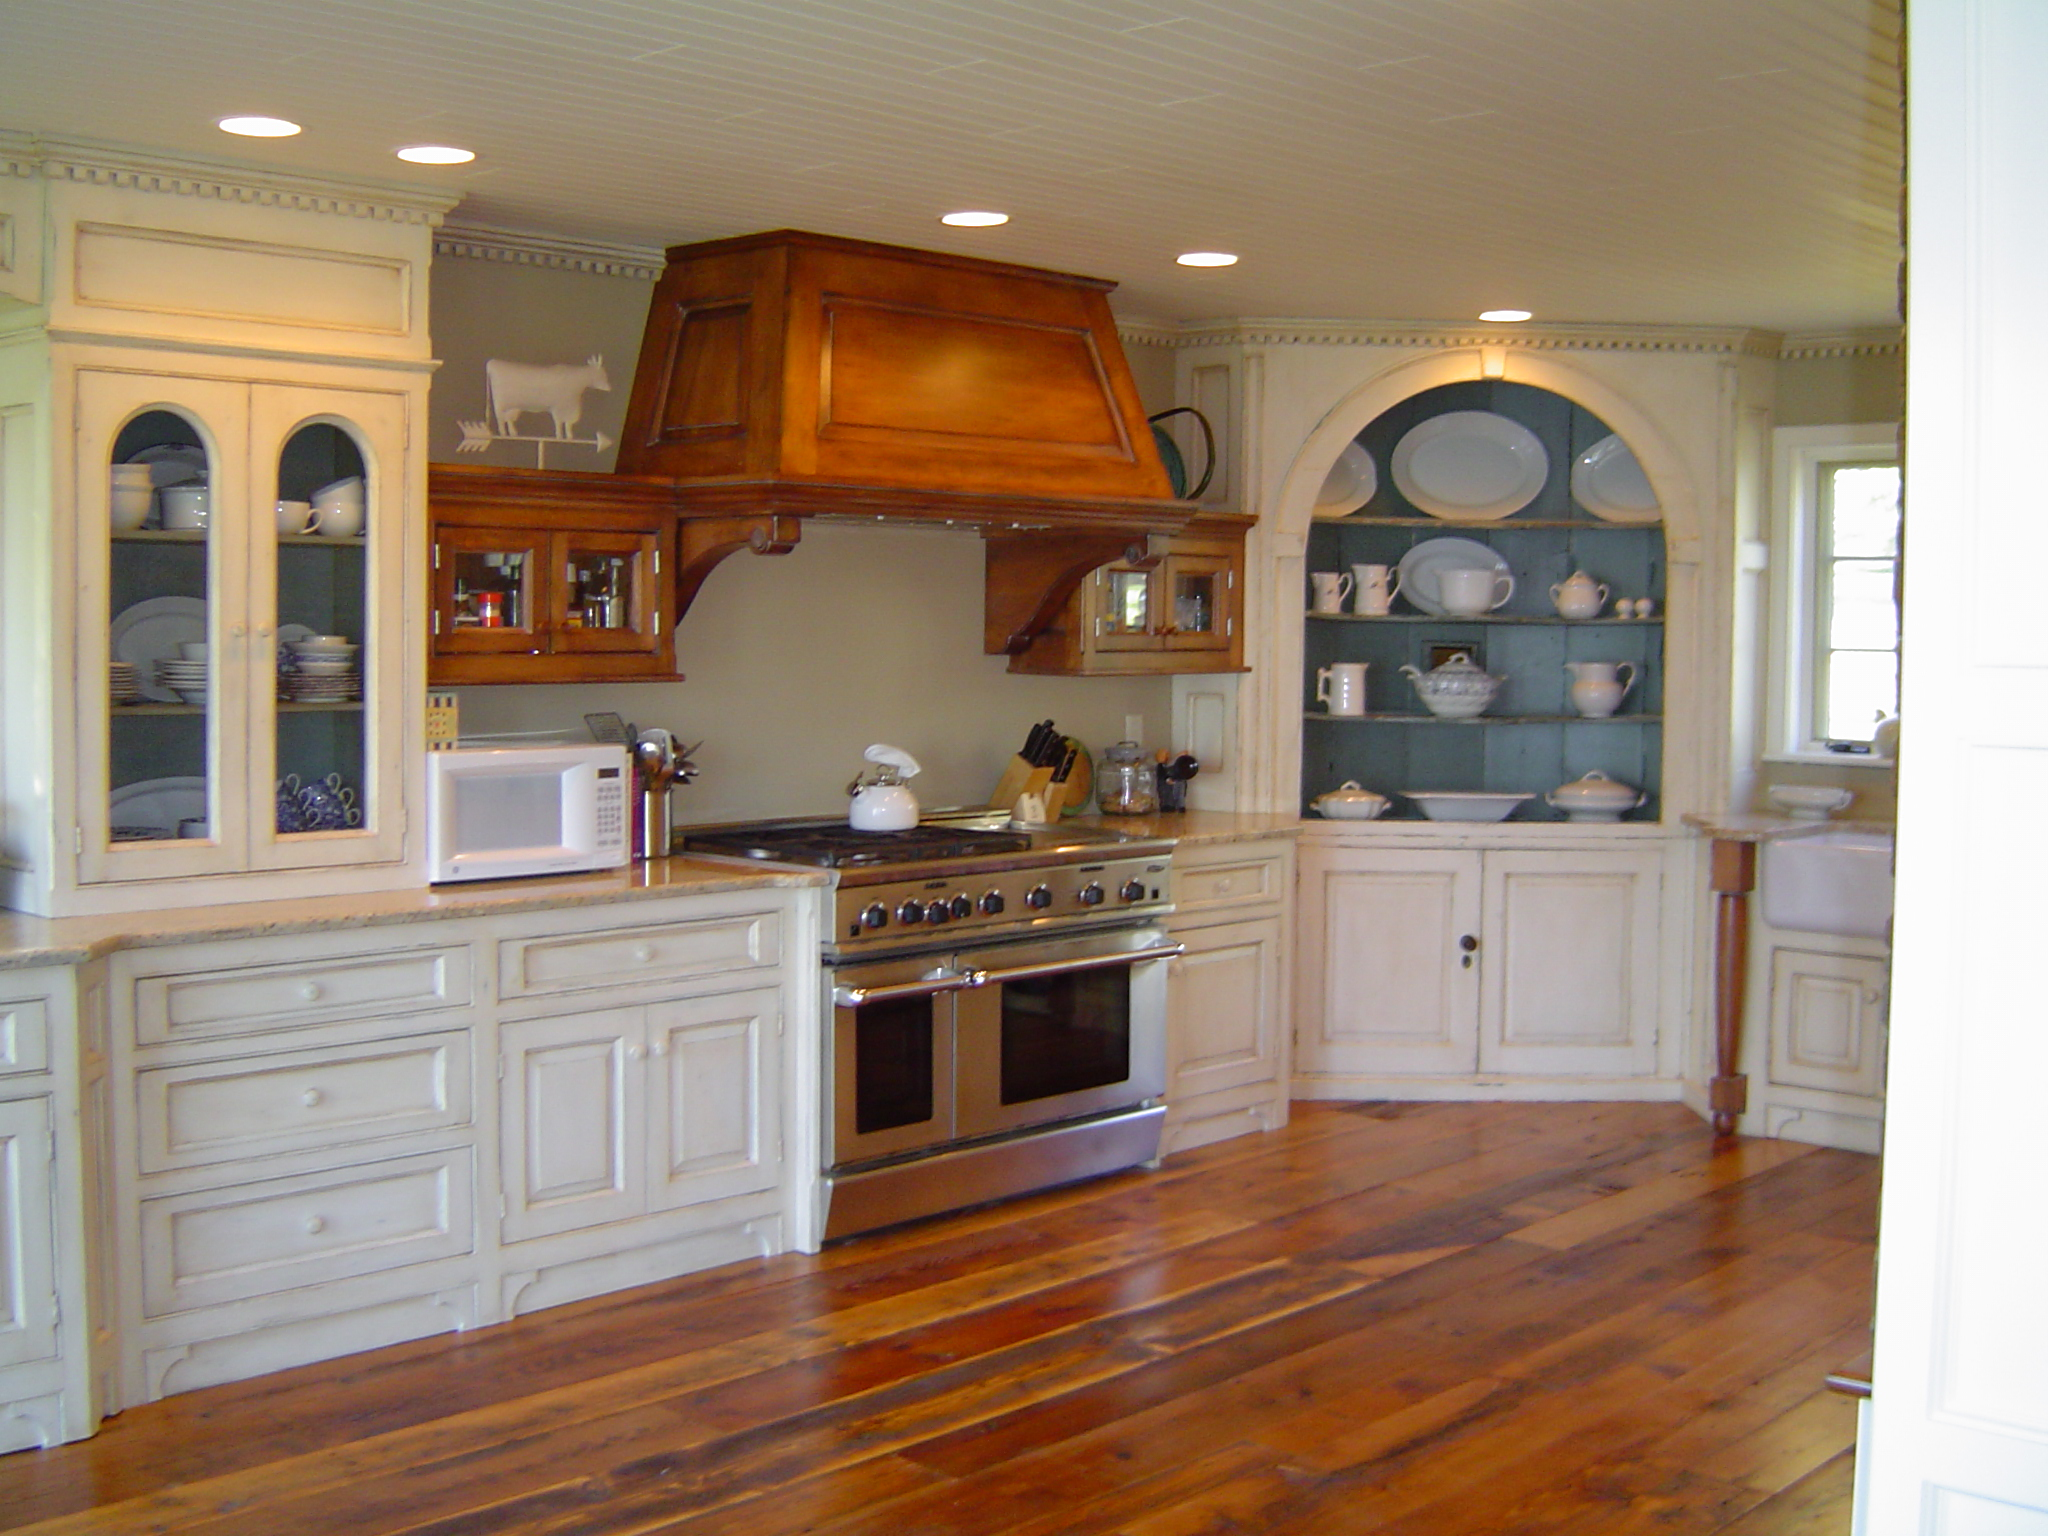 salvaged kitchen cabinets rental nyc 6 luxury 28 images